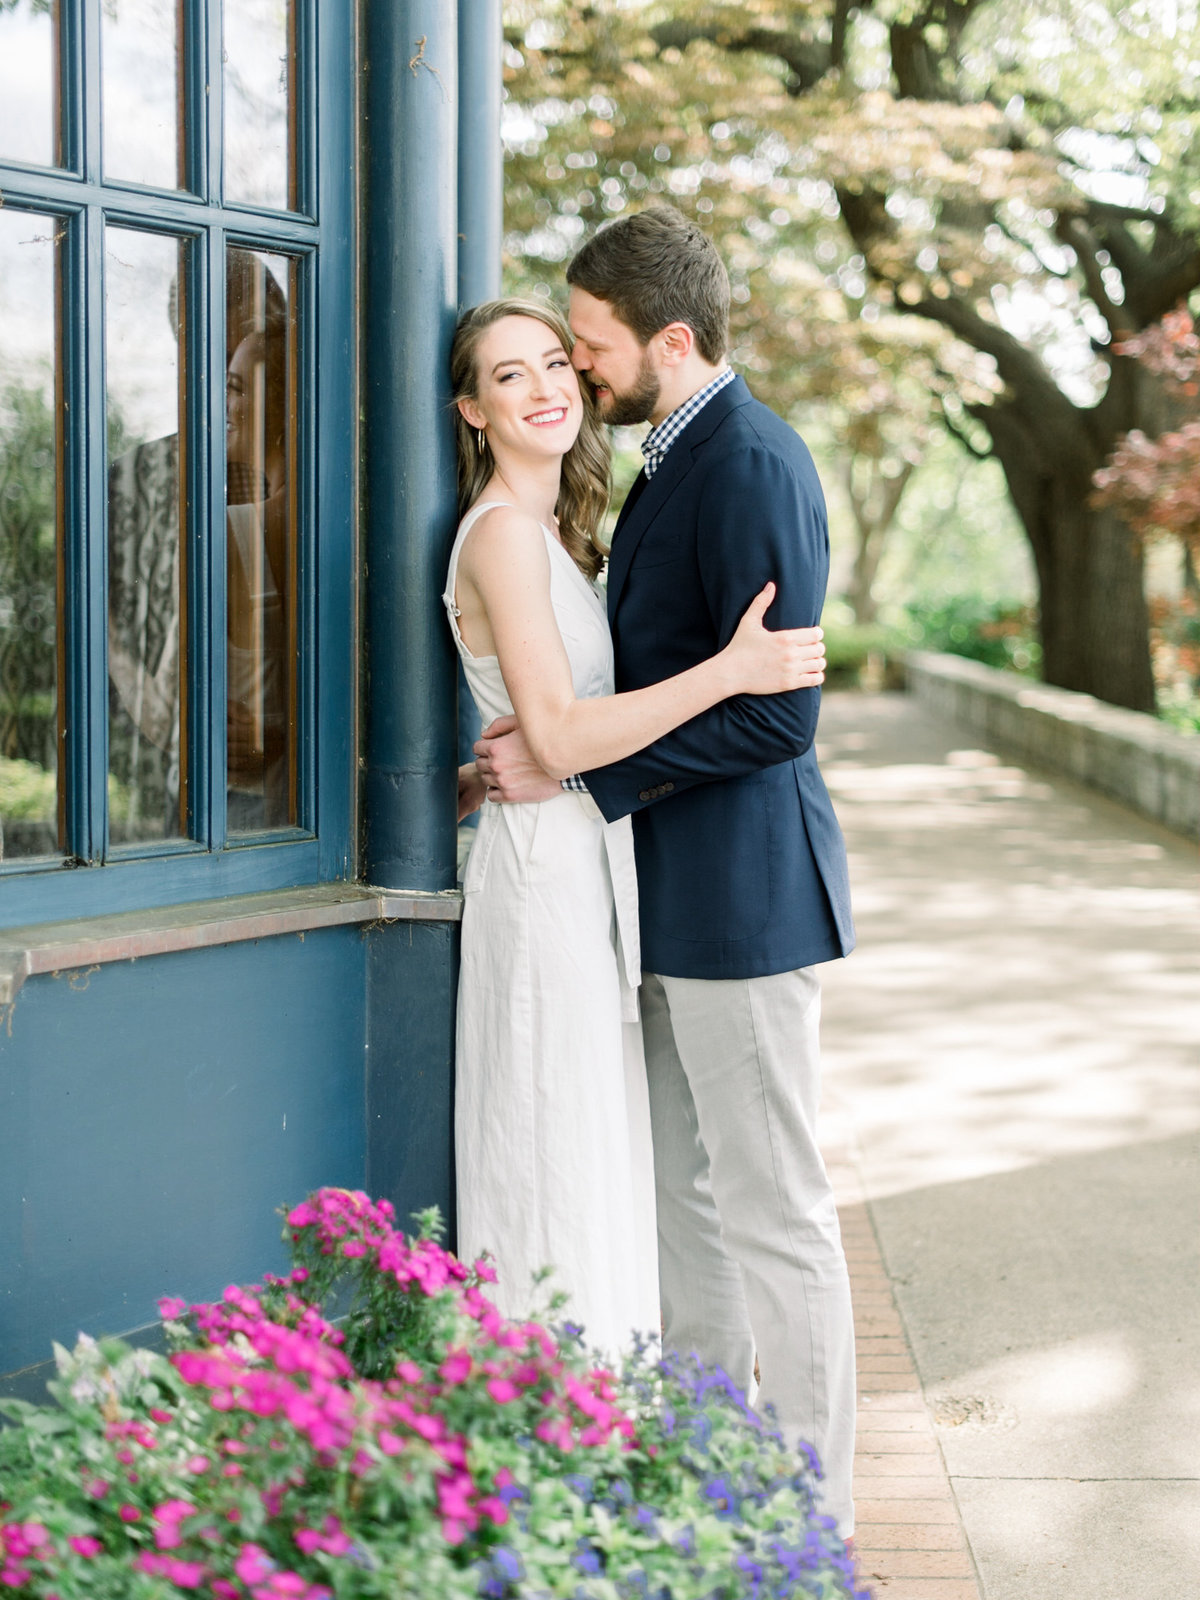 Courtney Hanson Photography - Dallas Spring Engagement Photos at Dallas Arboretum-2717